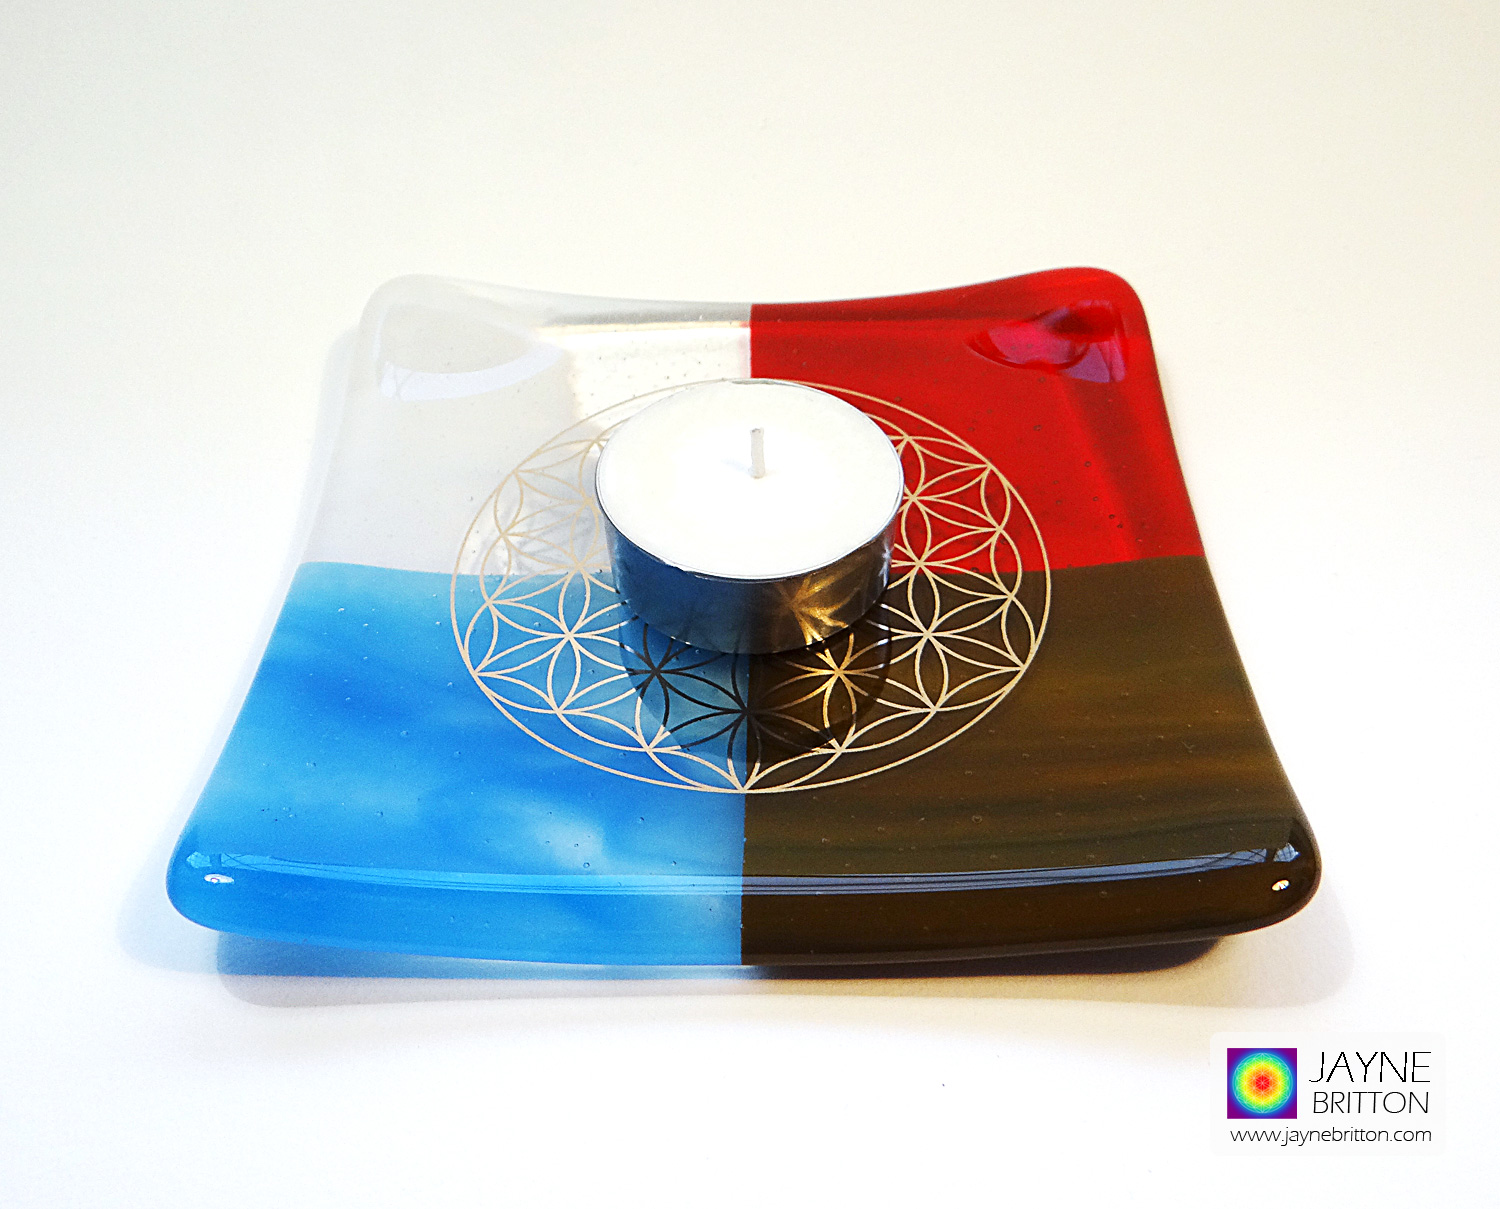 Platinum Flower of Life plate - four elements